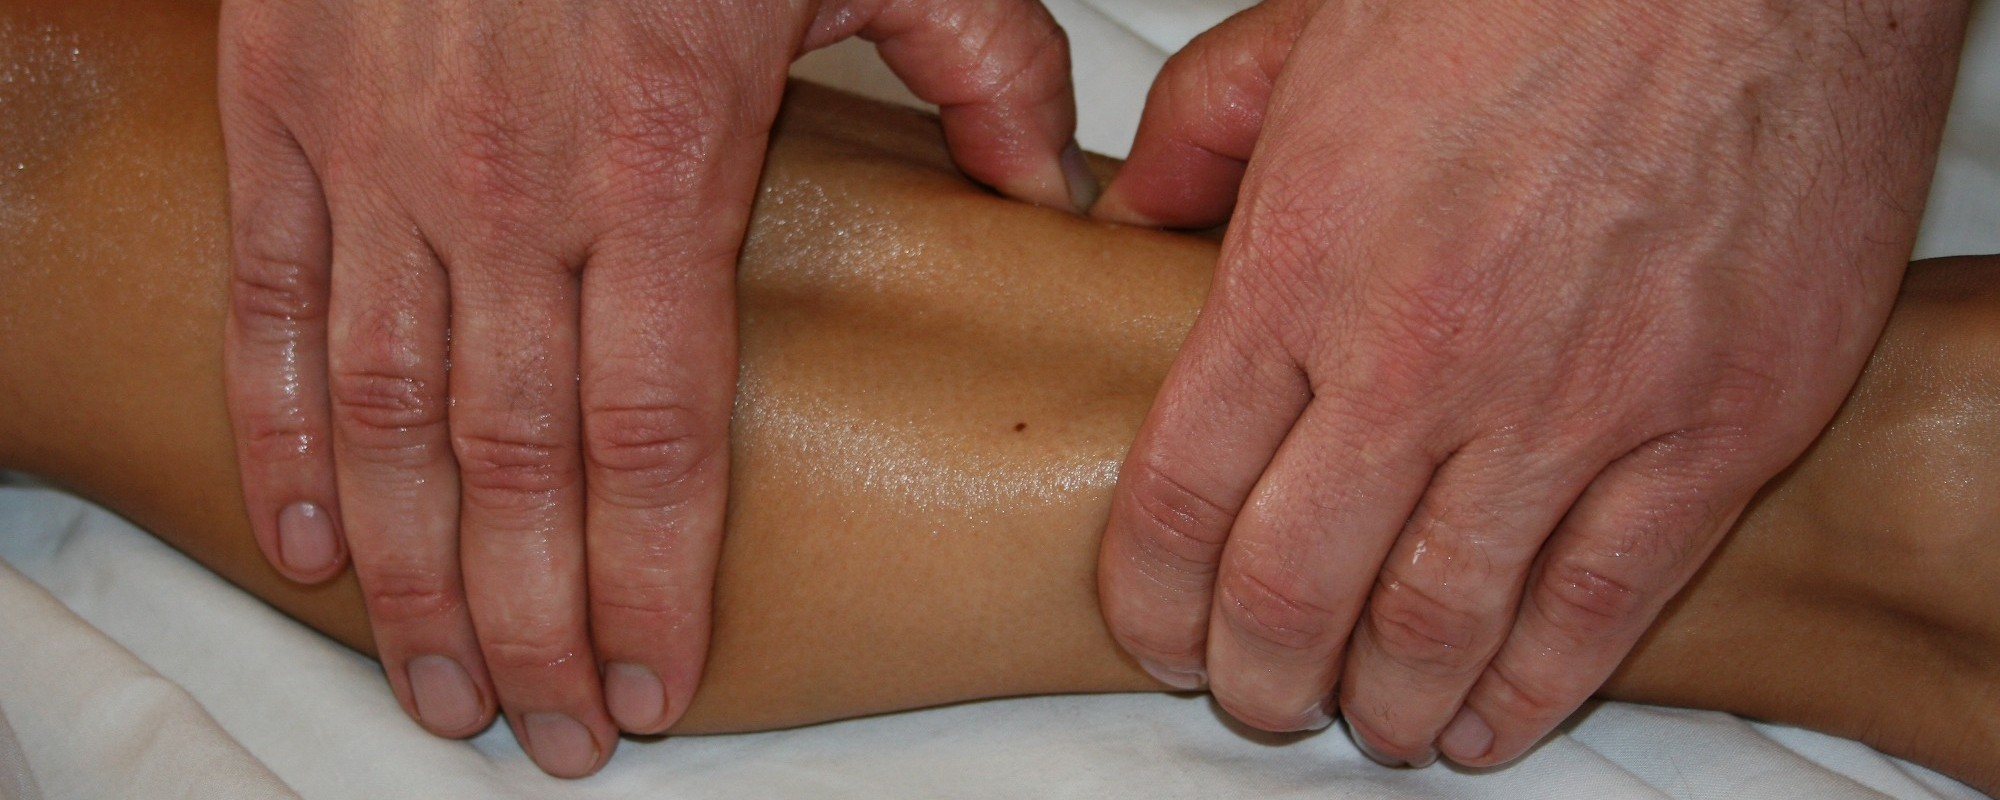 Massage Therapy | Massage Therapist | Therapeutic Massage | Sports Massage